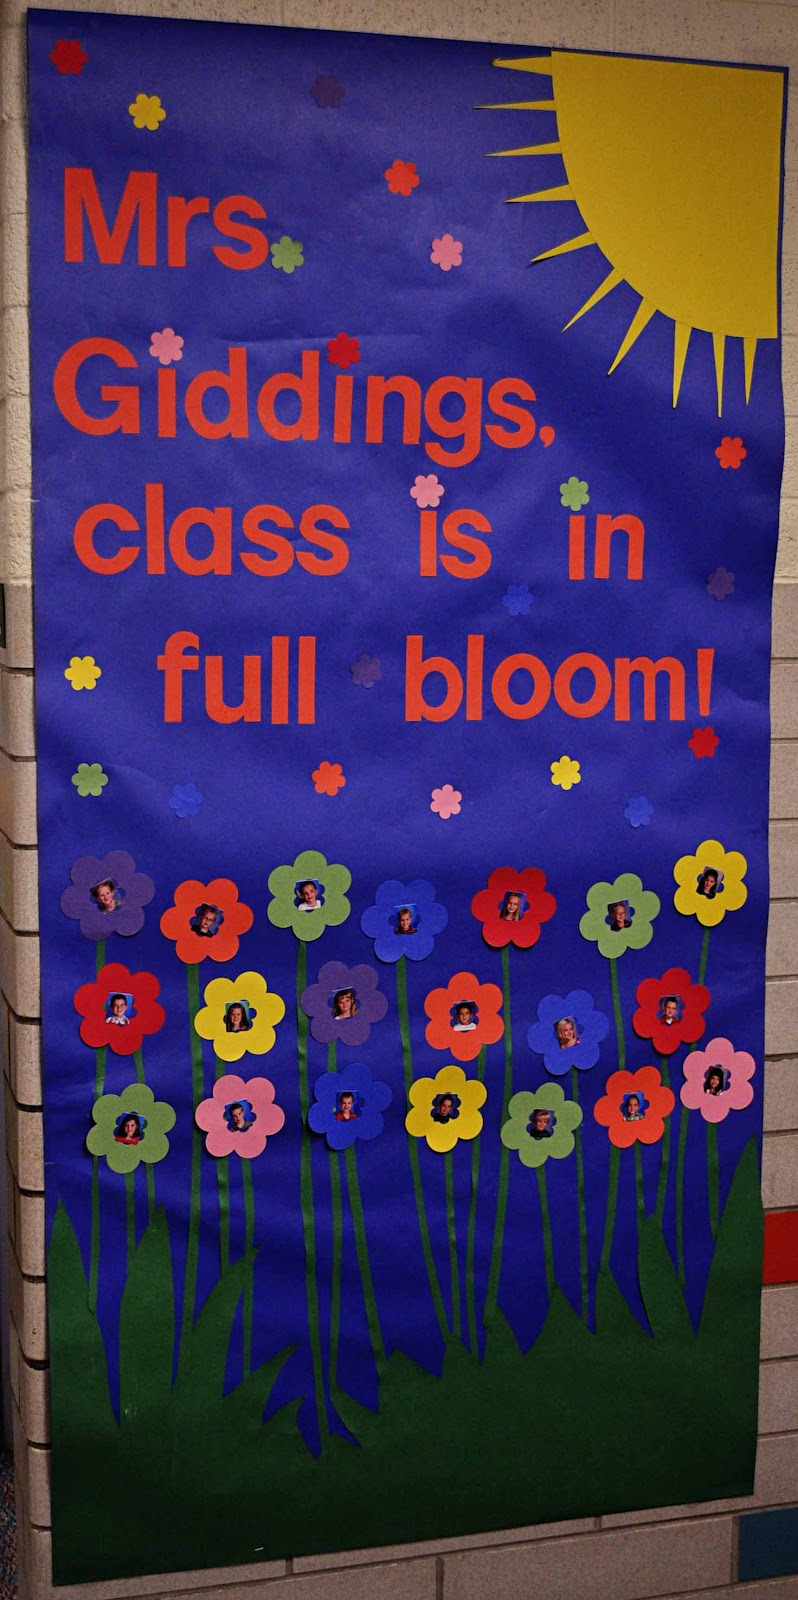 Classroom Decoration Ideas For Teachers Day ~ Children s learning activities teacher appreciation week